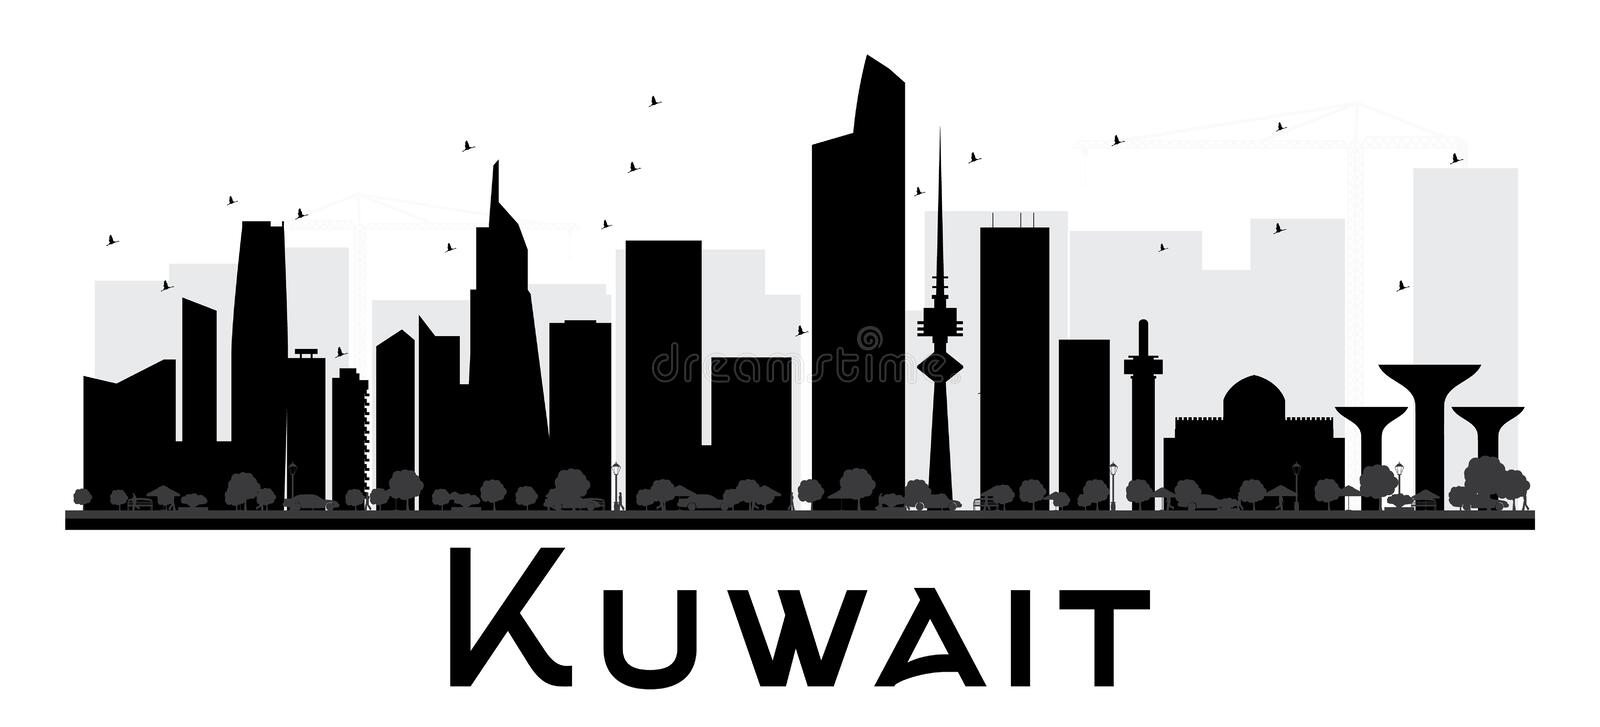 Svartvit kontur för Kuwait City horisont royaltyfri illustrationer